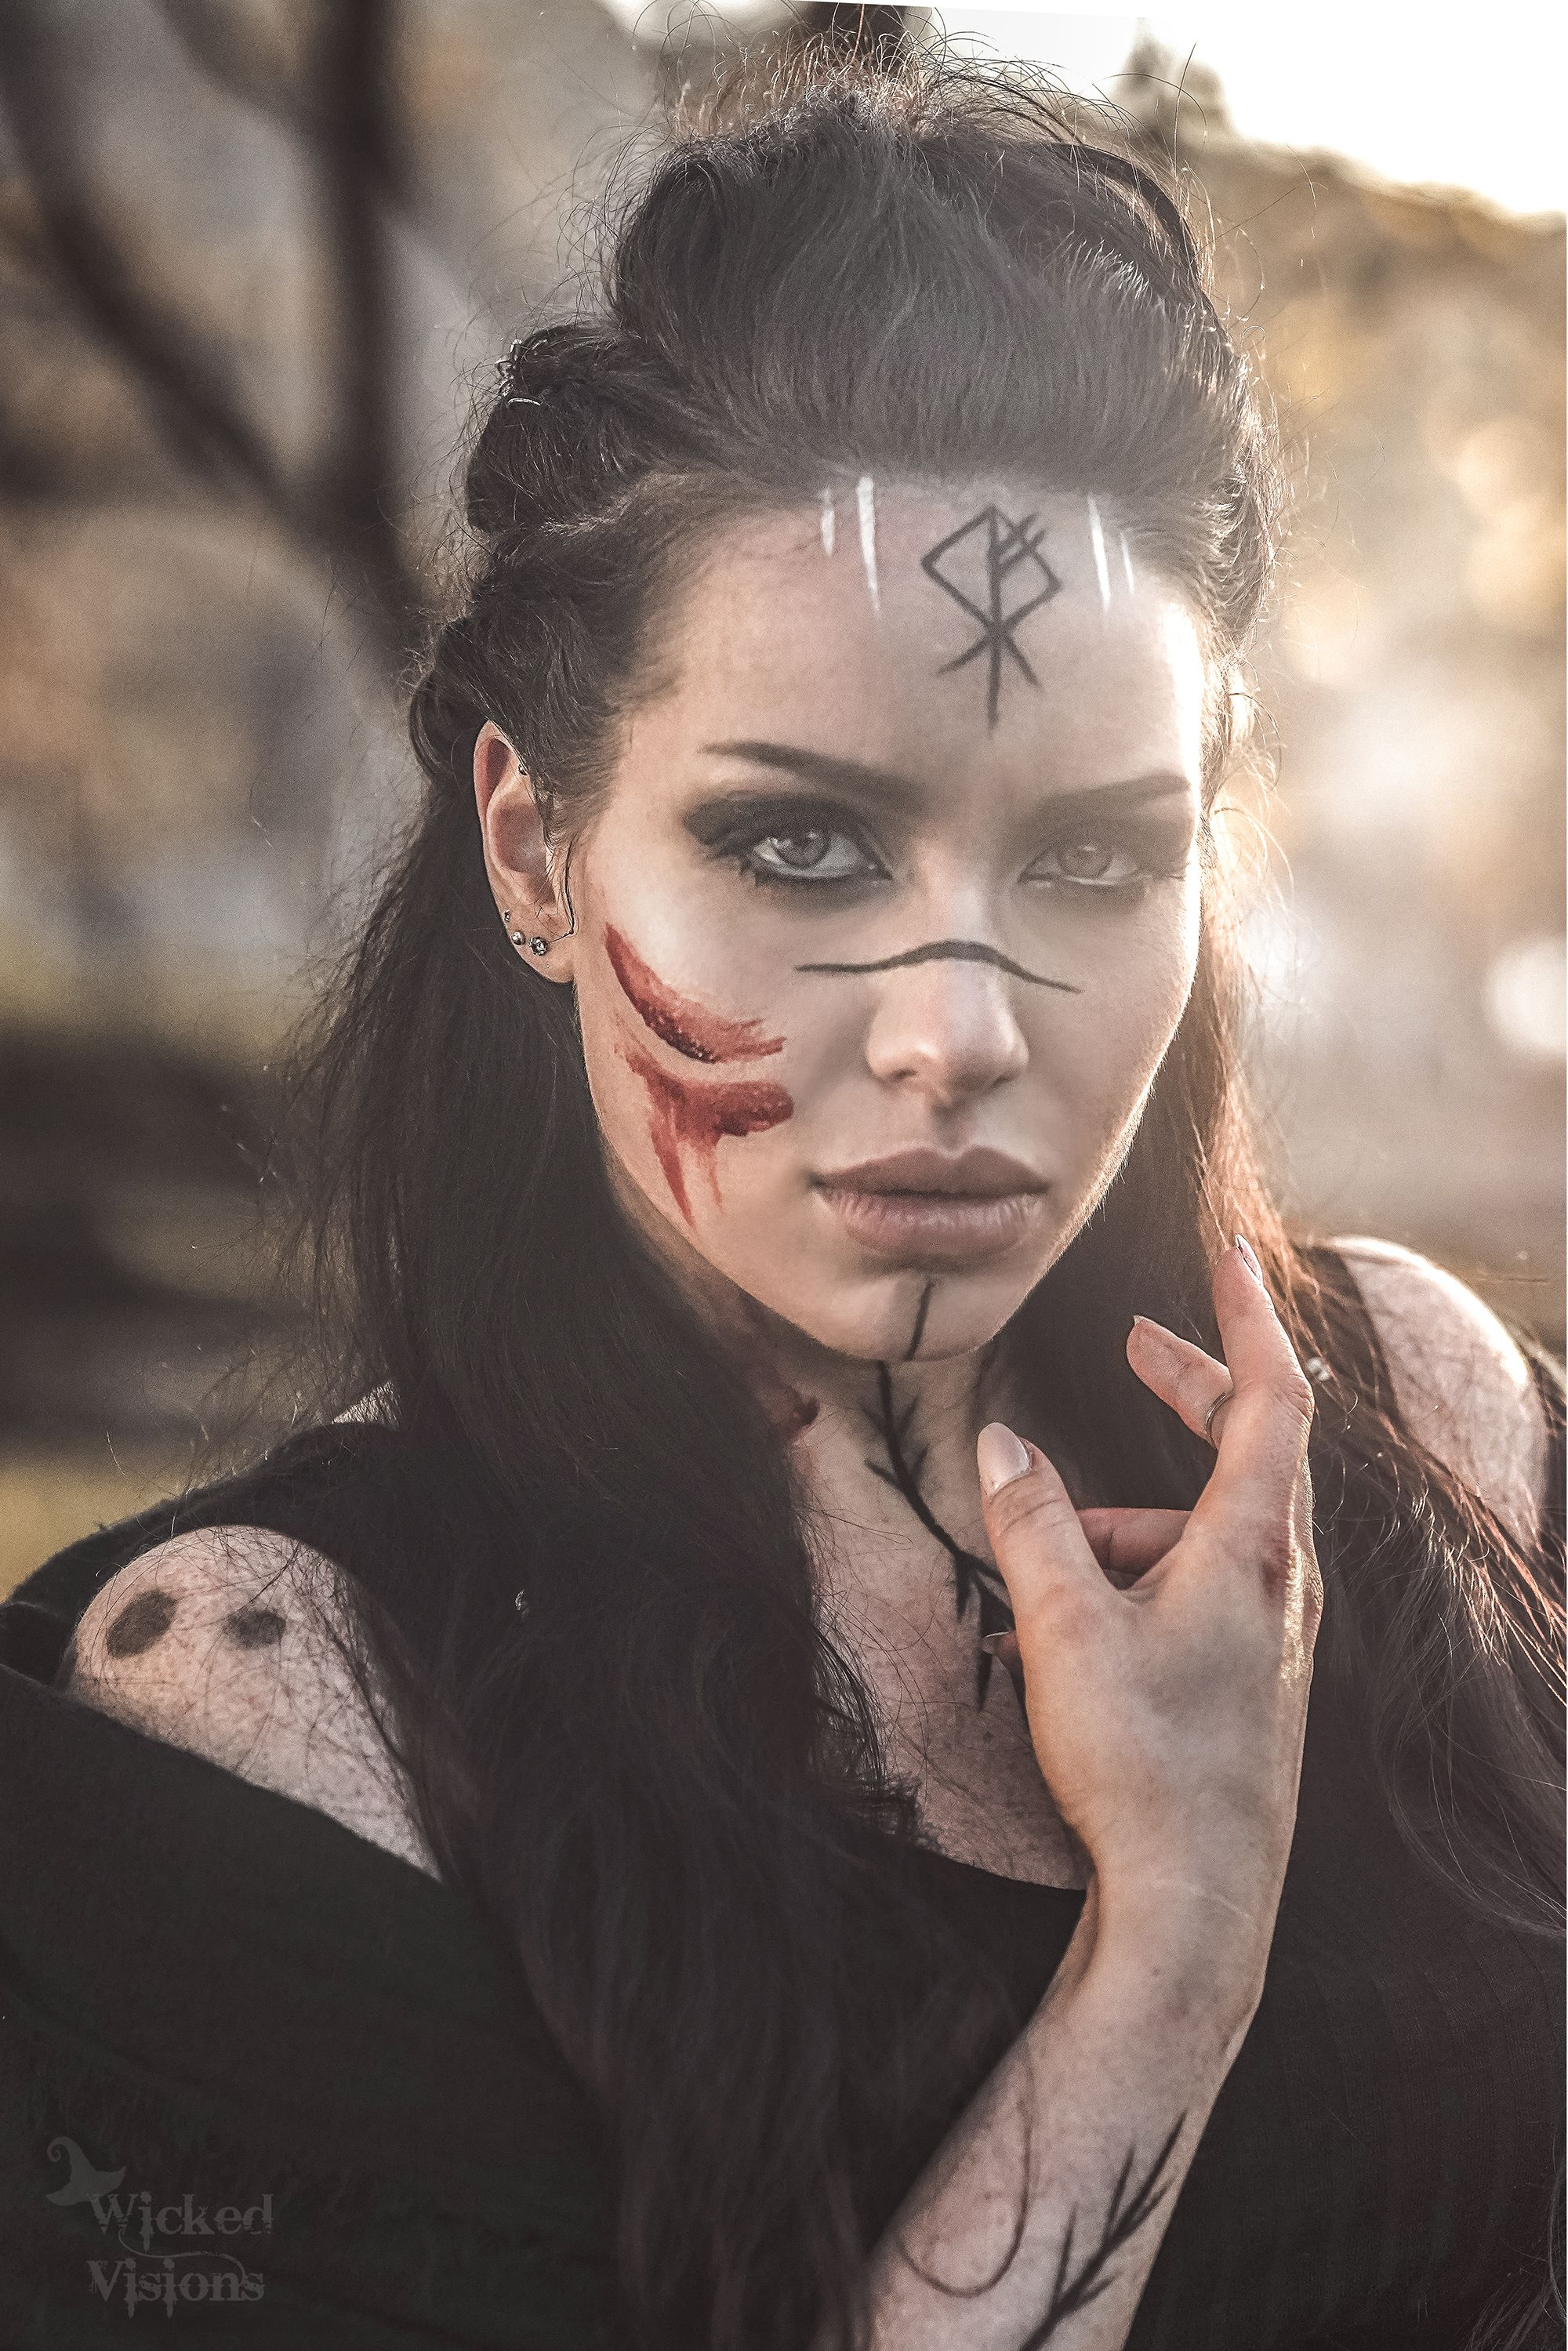 Best Viking Woman Stock Photos, Pictures & Royalty-Free